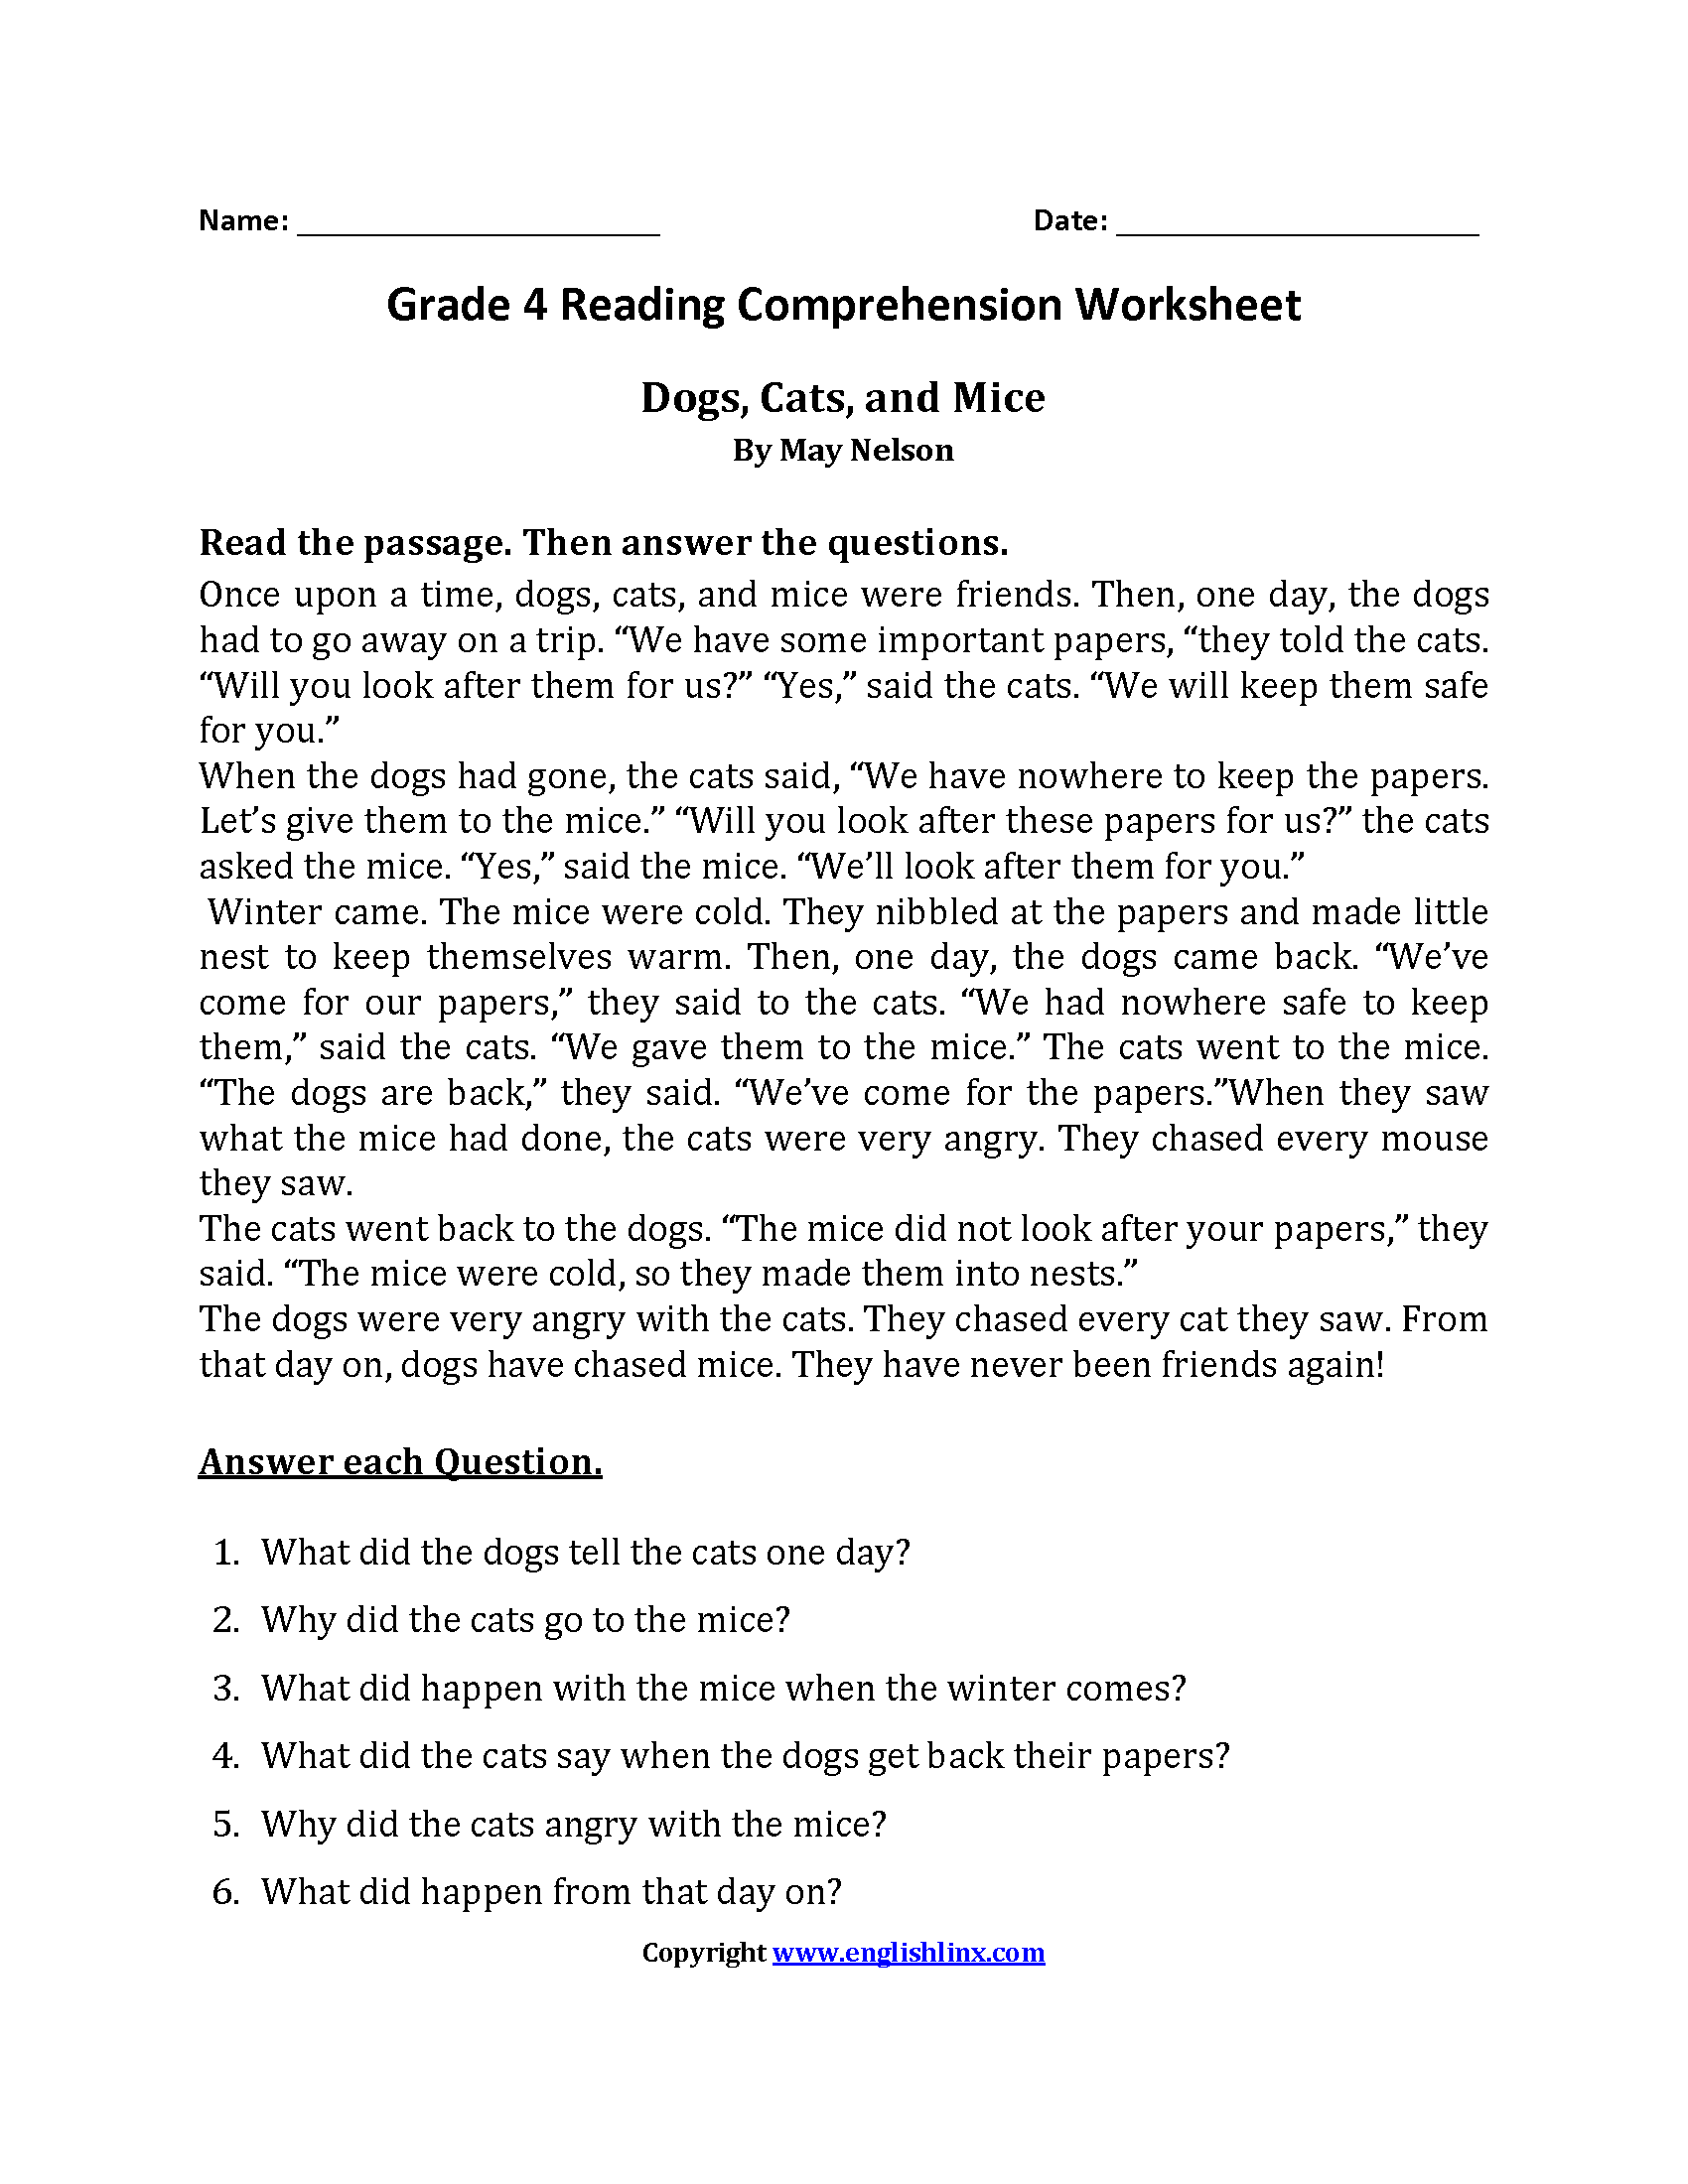 Worksheet Reading Comprehension Passages 4th Grade reading worksheets fourth grade worksheets